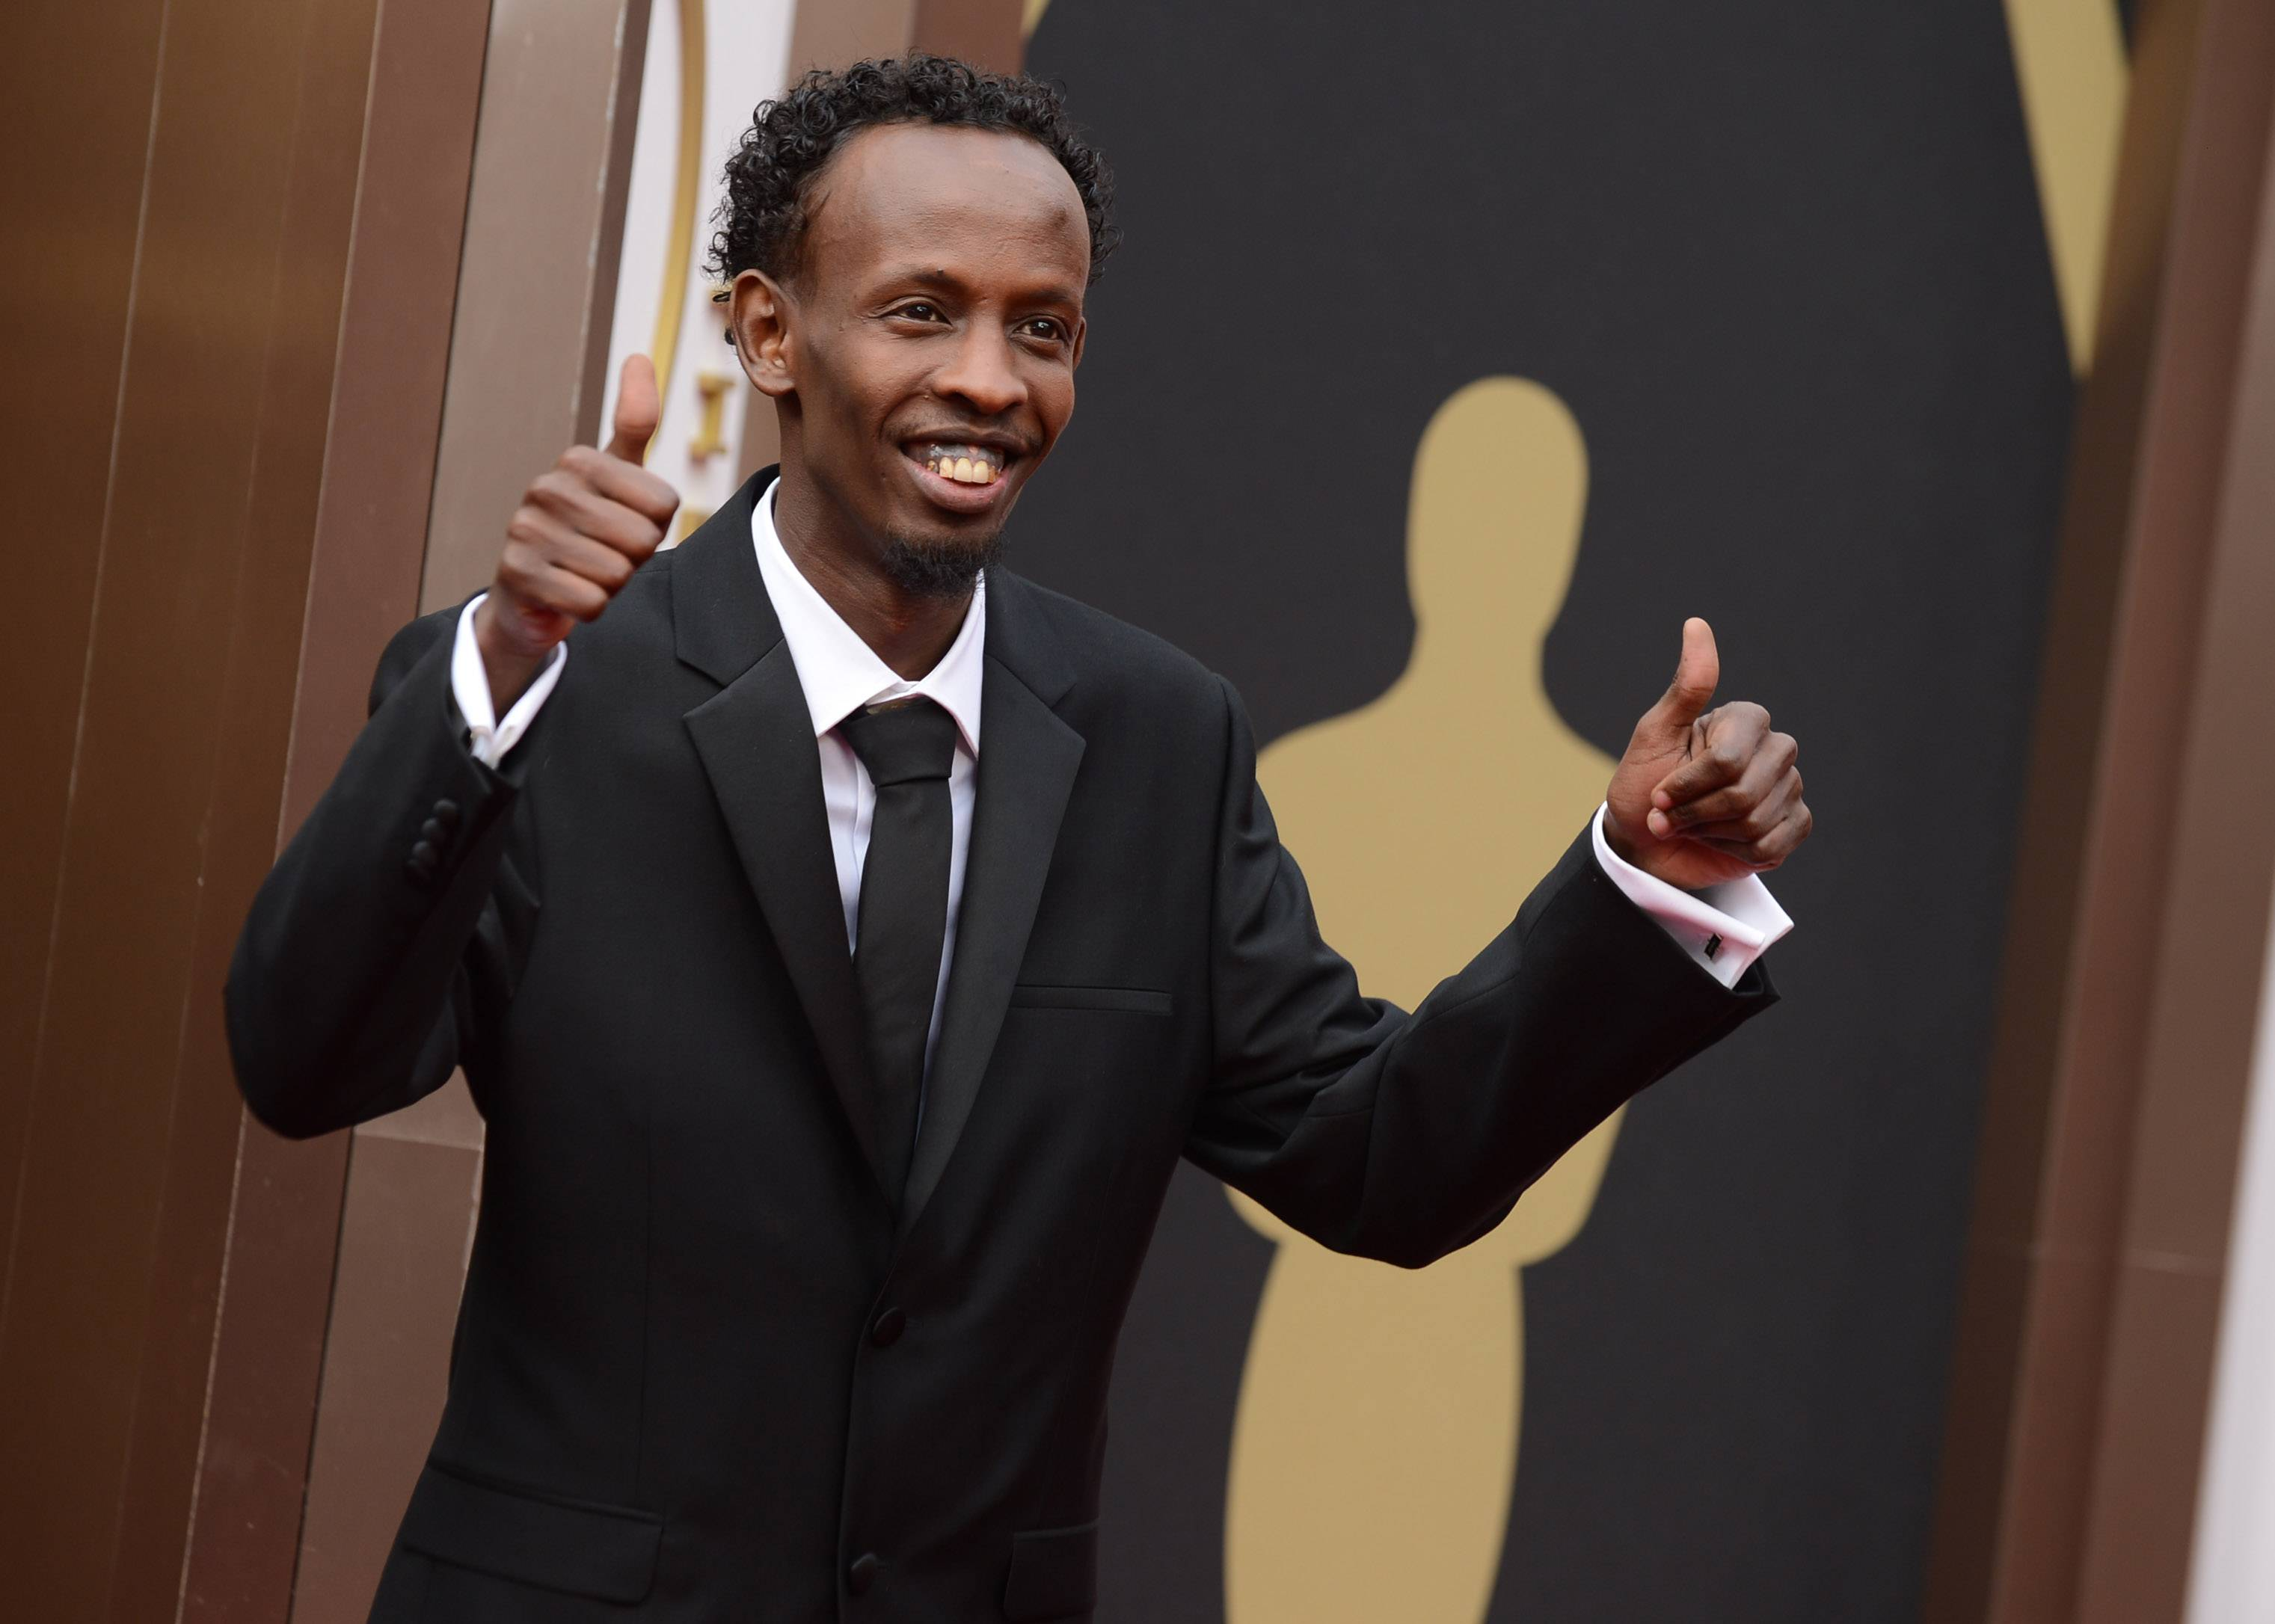 """Captain Phillips"" star and Oscar nominee Barkhad Abdi arrives at the Oscars on Sunday in Los Angeles."